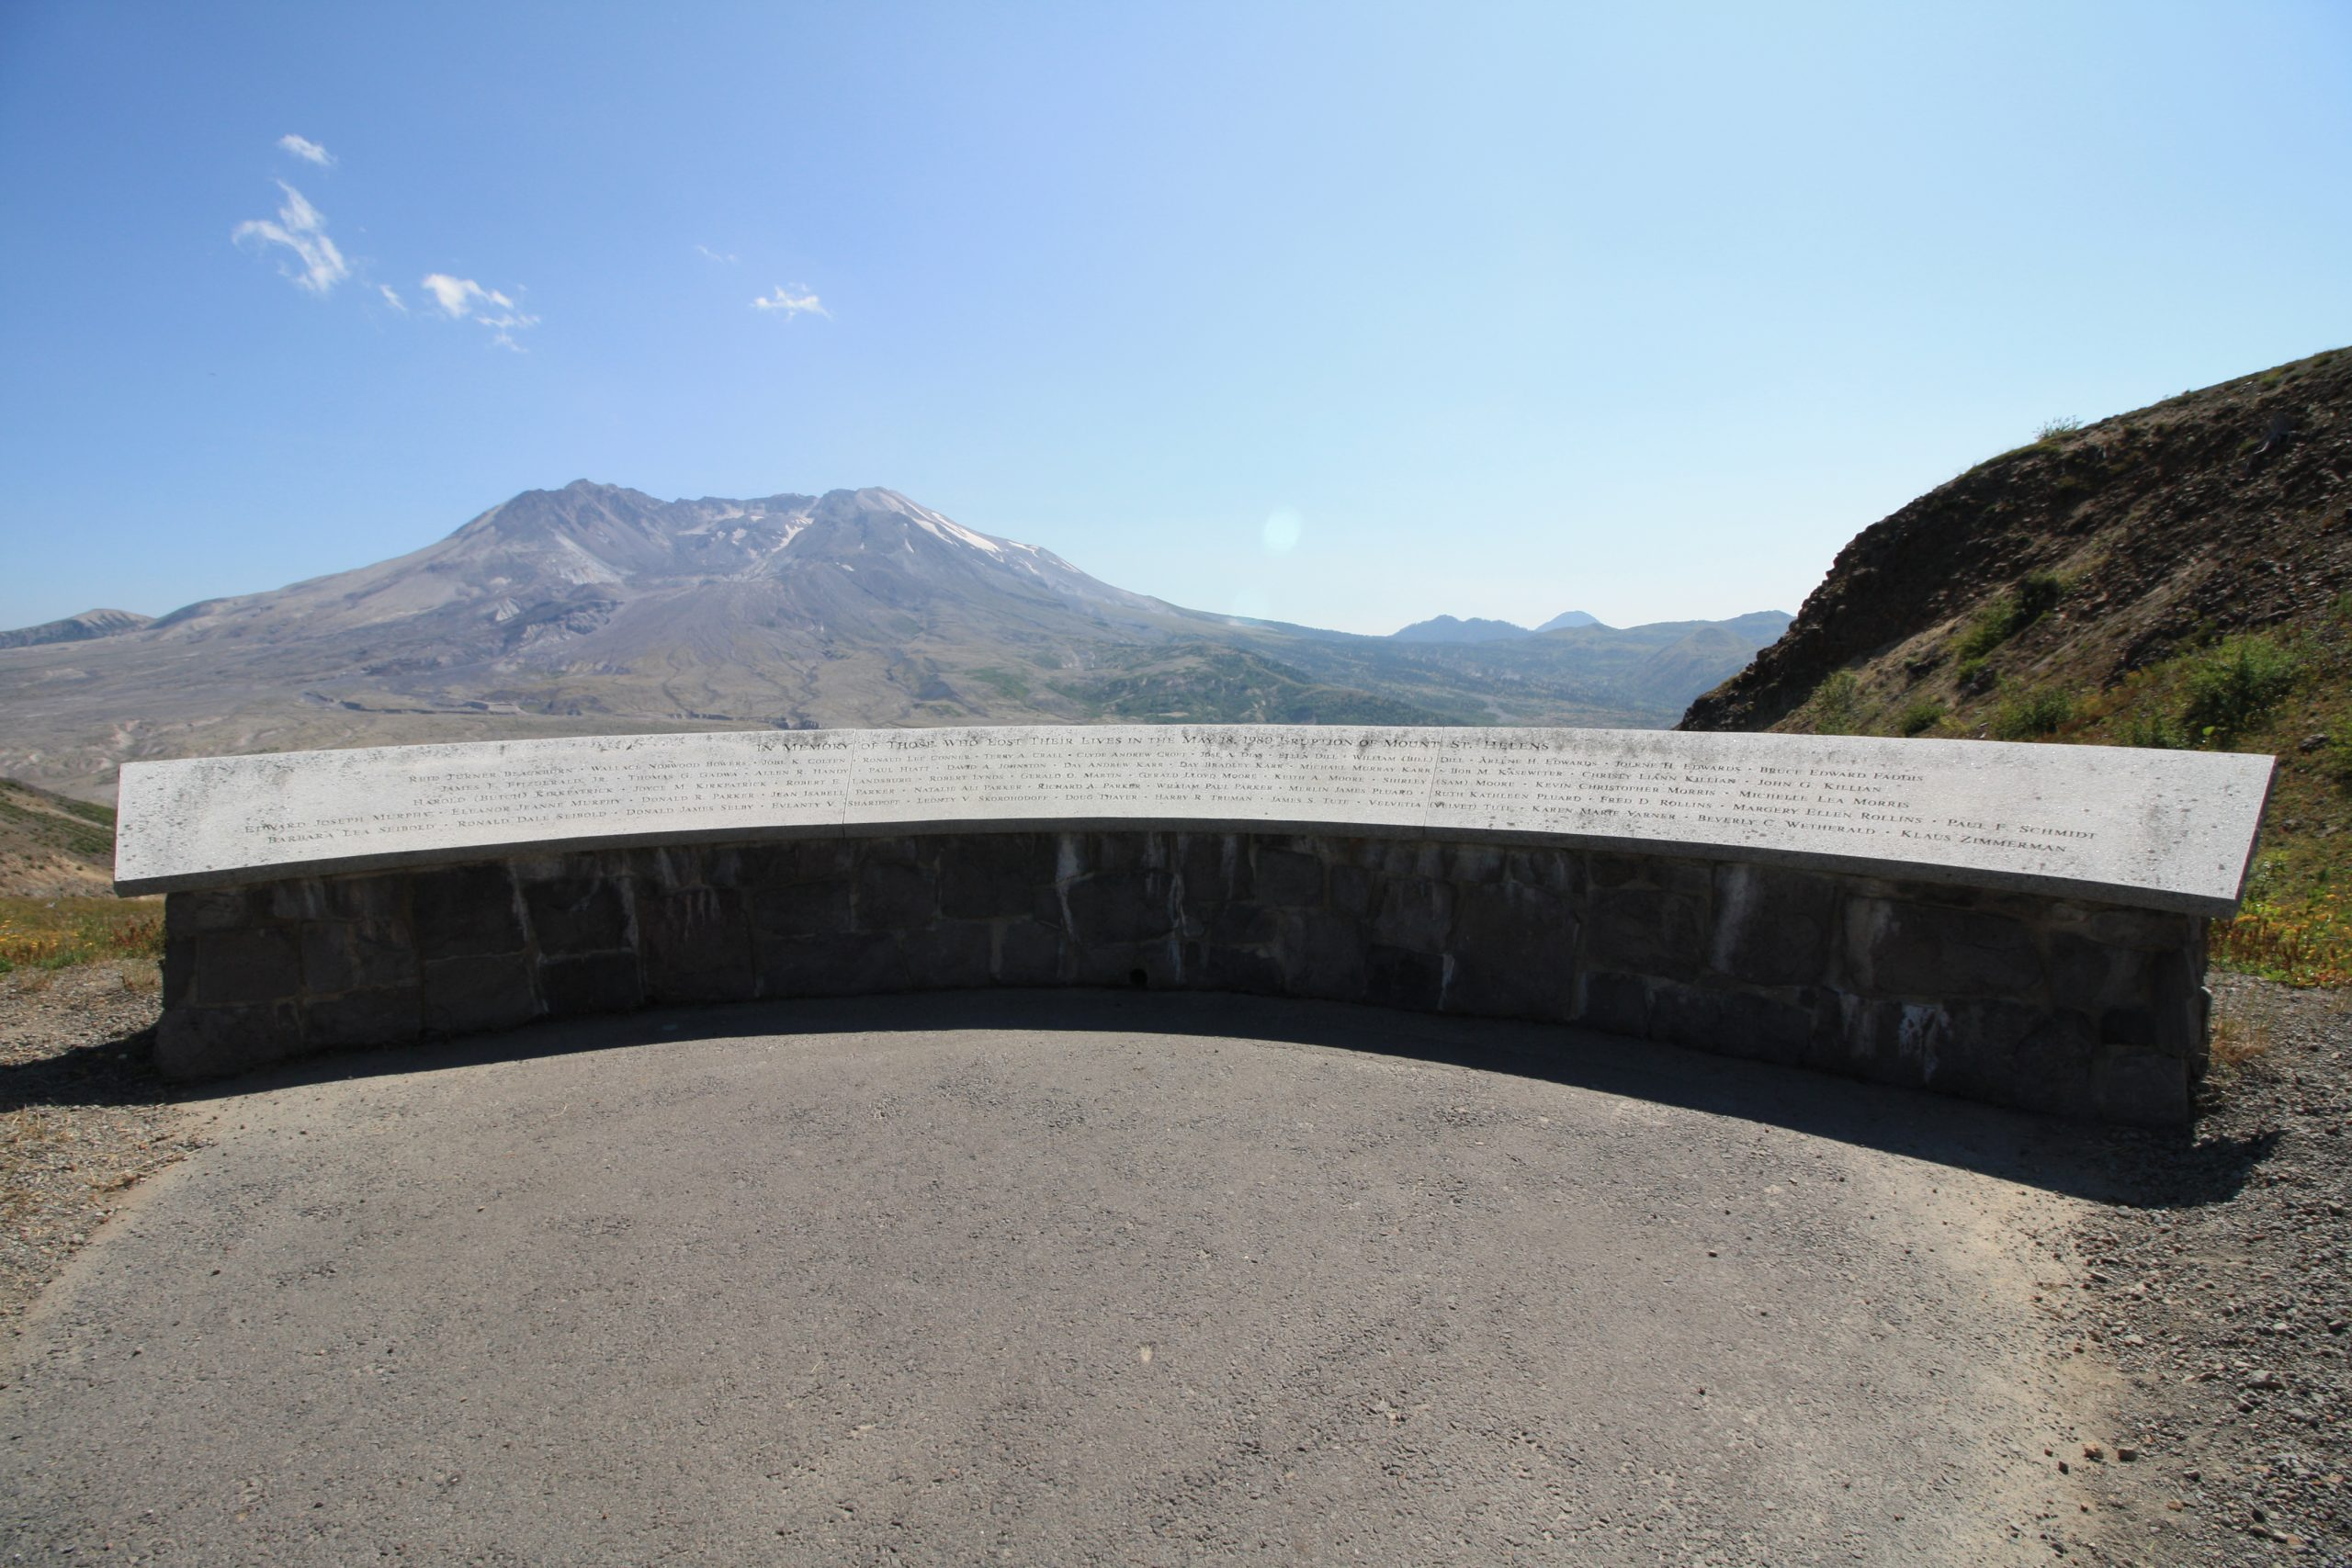 Memorial at Mount St. Helens